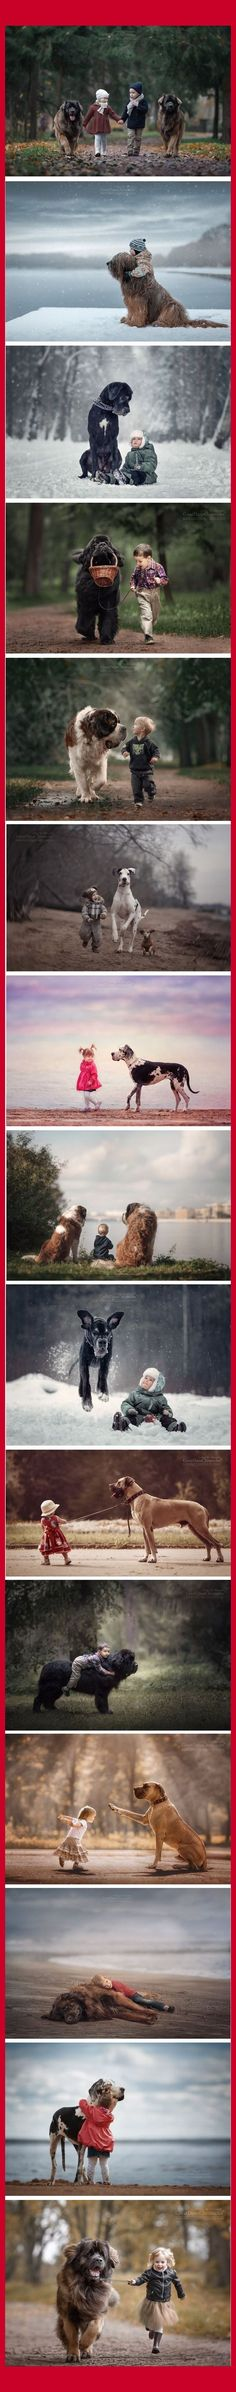 LITTLE KIDS + BIG DOGS photographer Andy Seliverstoff by James Gould-Bourn via: www.boredpanda.com/little-kids-big-dogs-photography-andy-seliverstoff/?cexp_id=1124